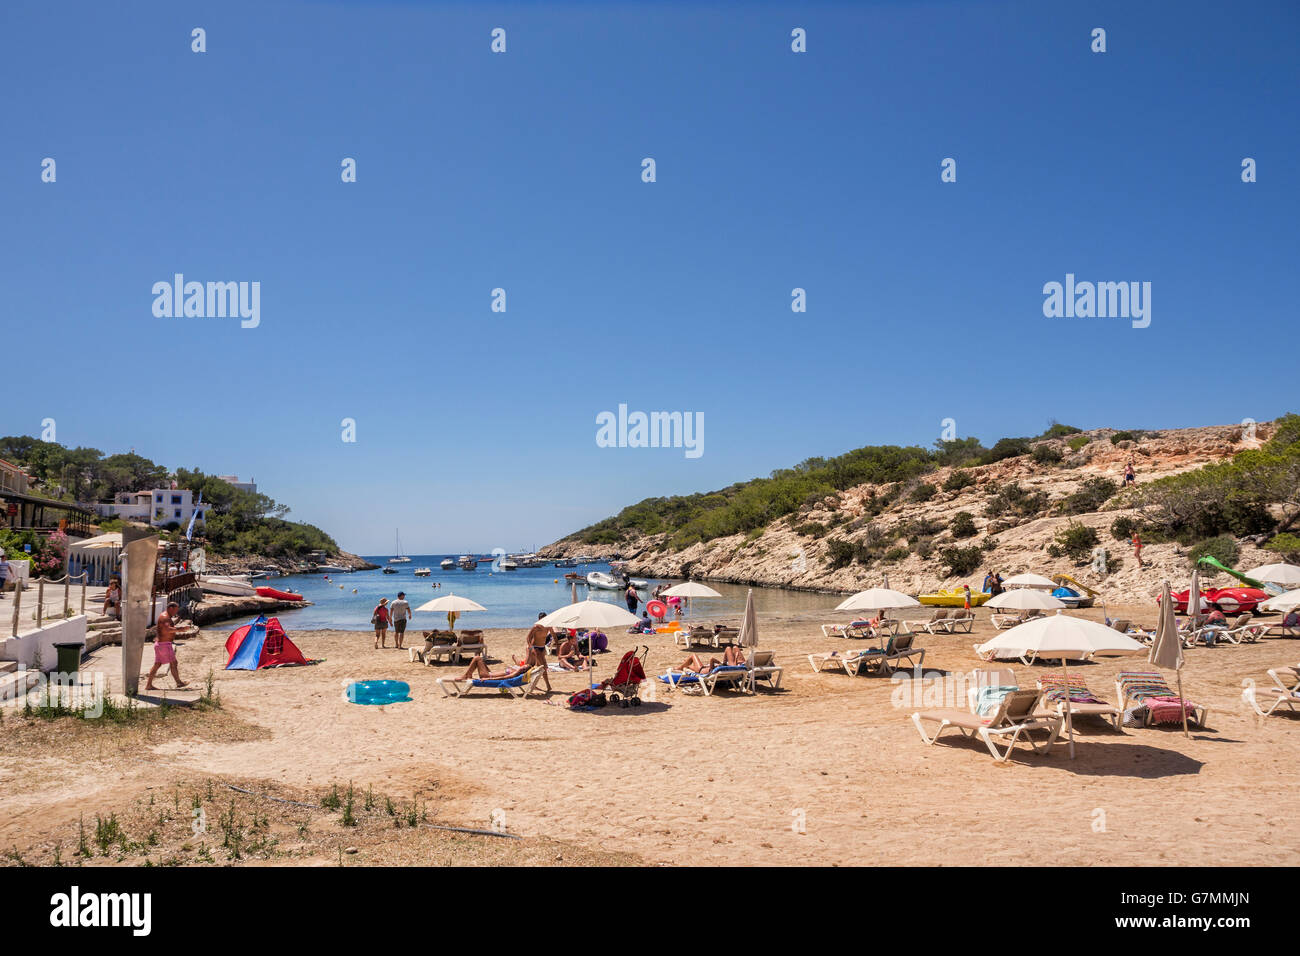 La plage de Portinatx, Ibiza, Espagne. Photo Stock